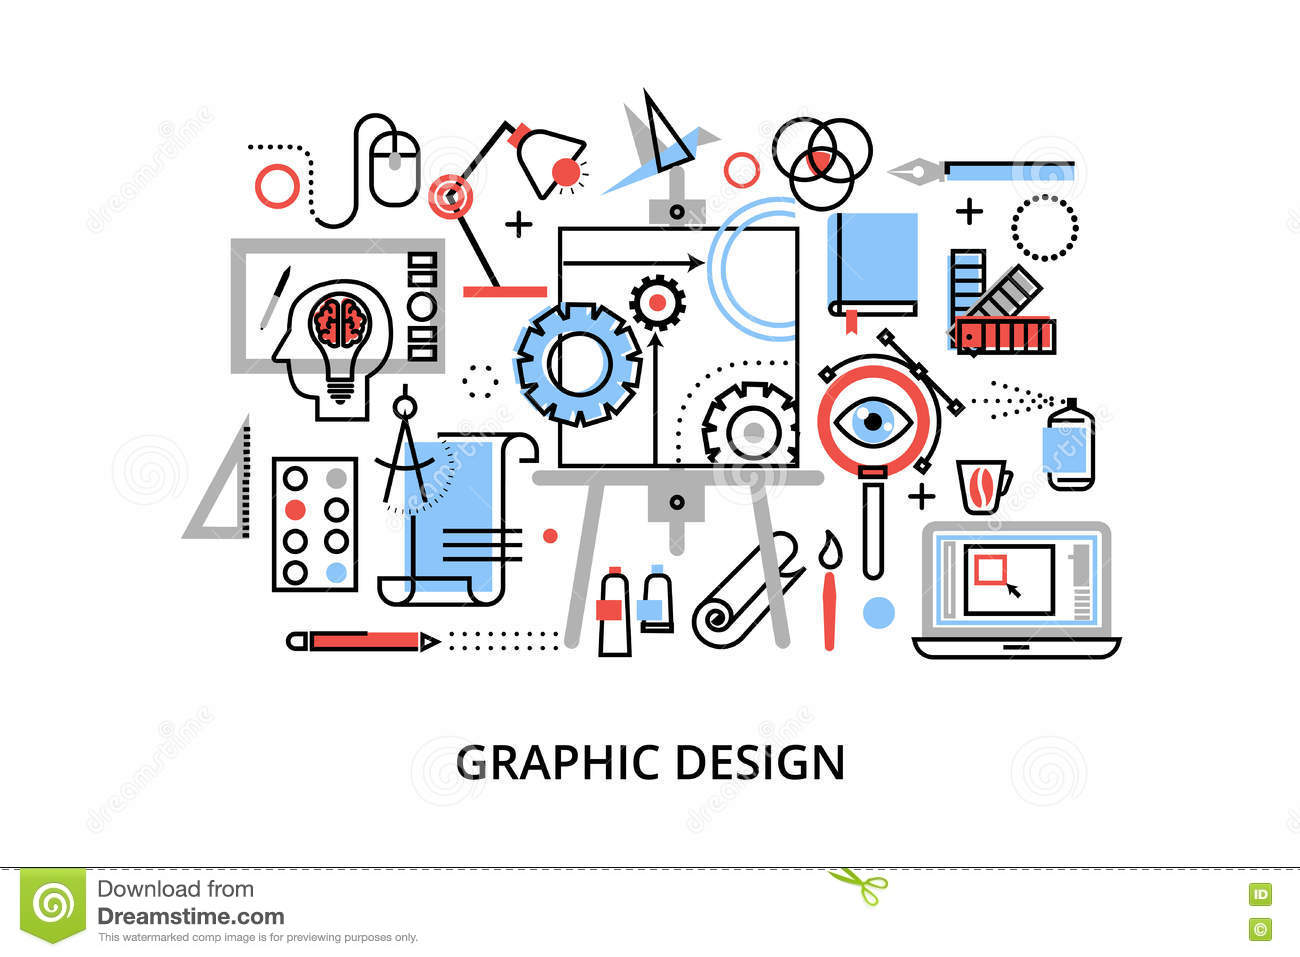 Modern flat thin line design vector illustration, infographic concept of graphic design, designer items and tools